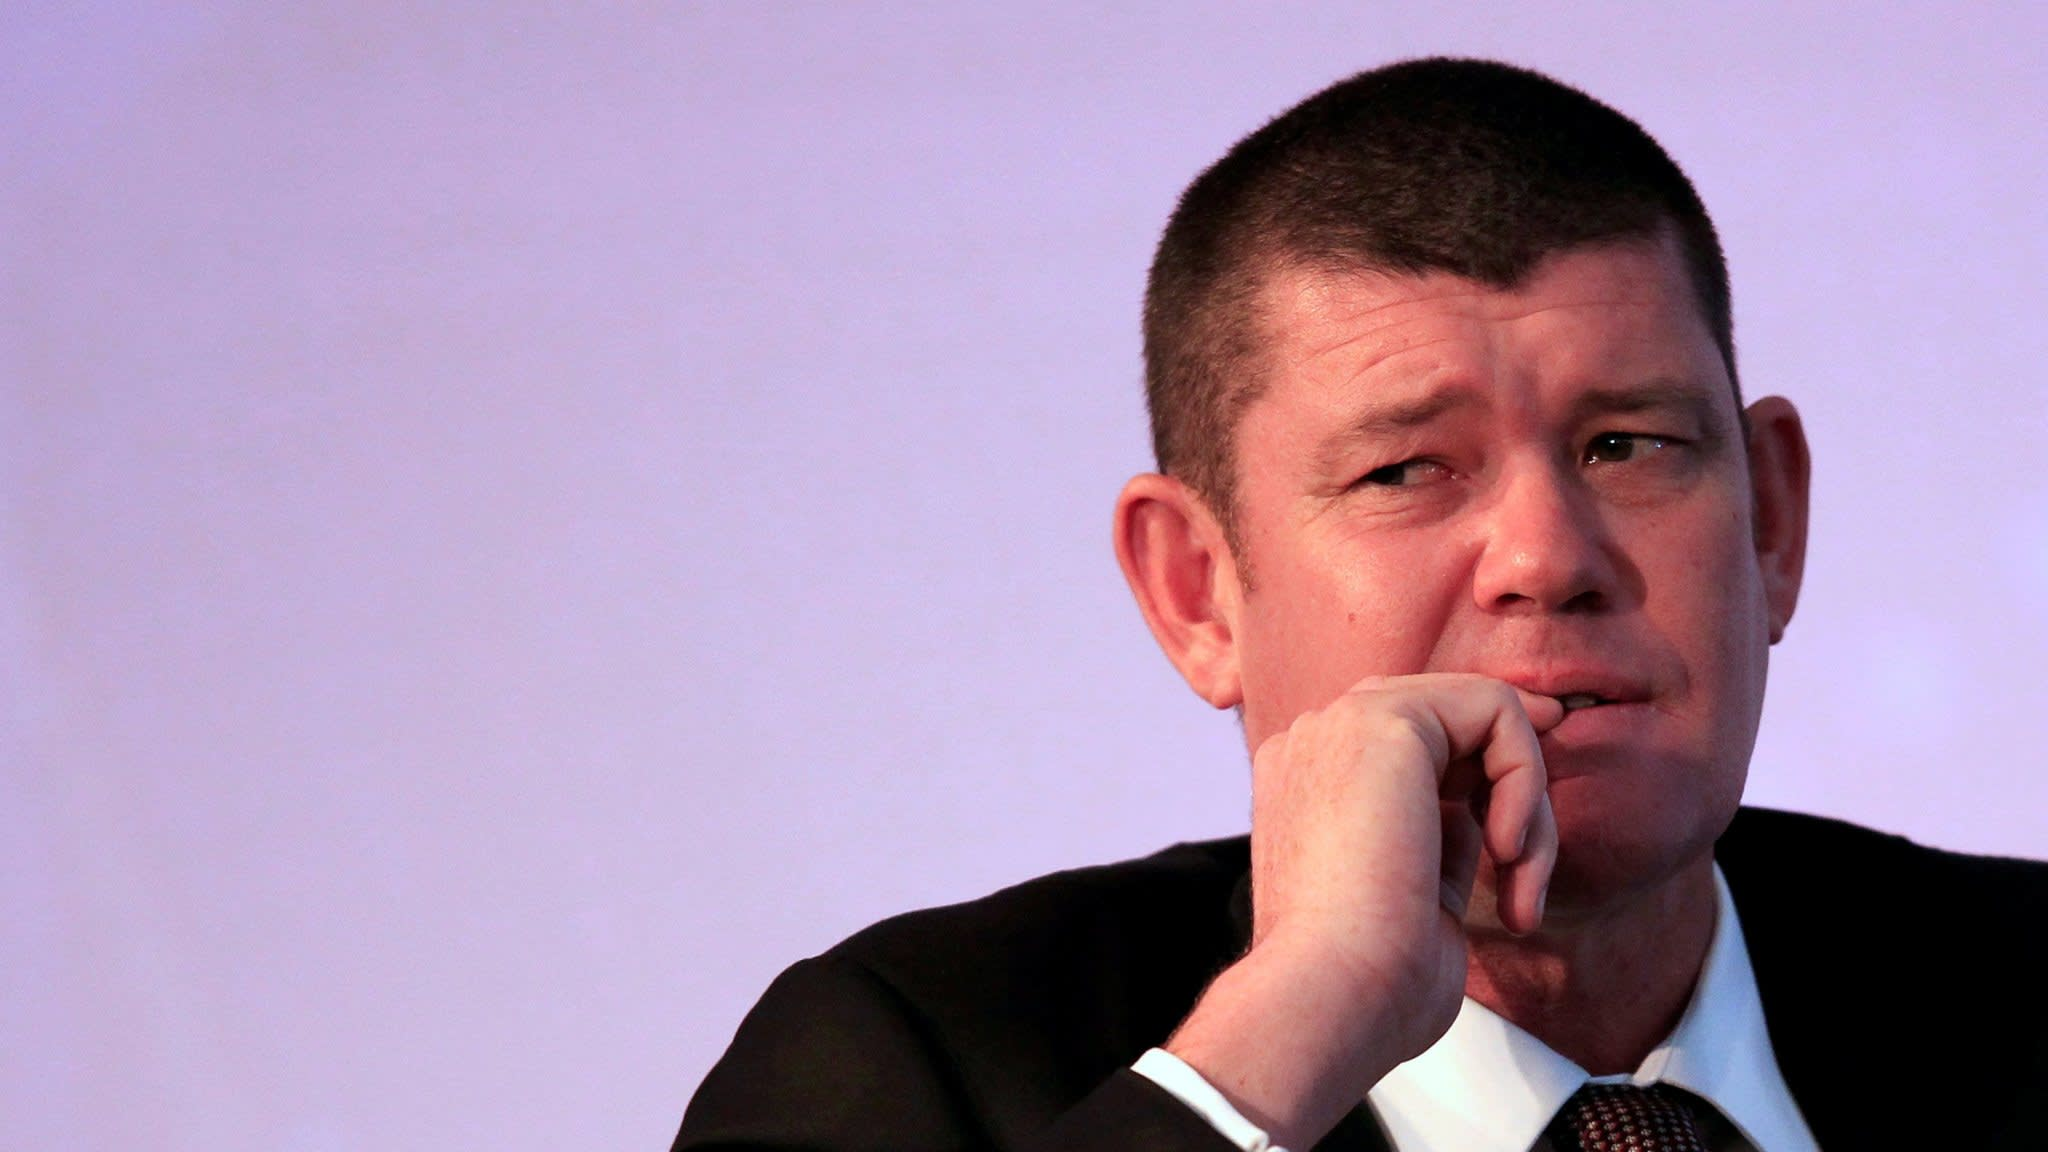 James Packer, billionaire in retreat after series of crises